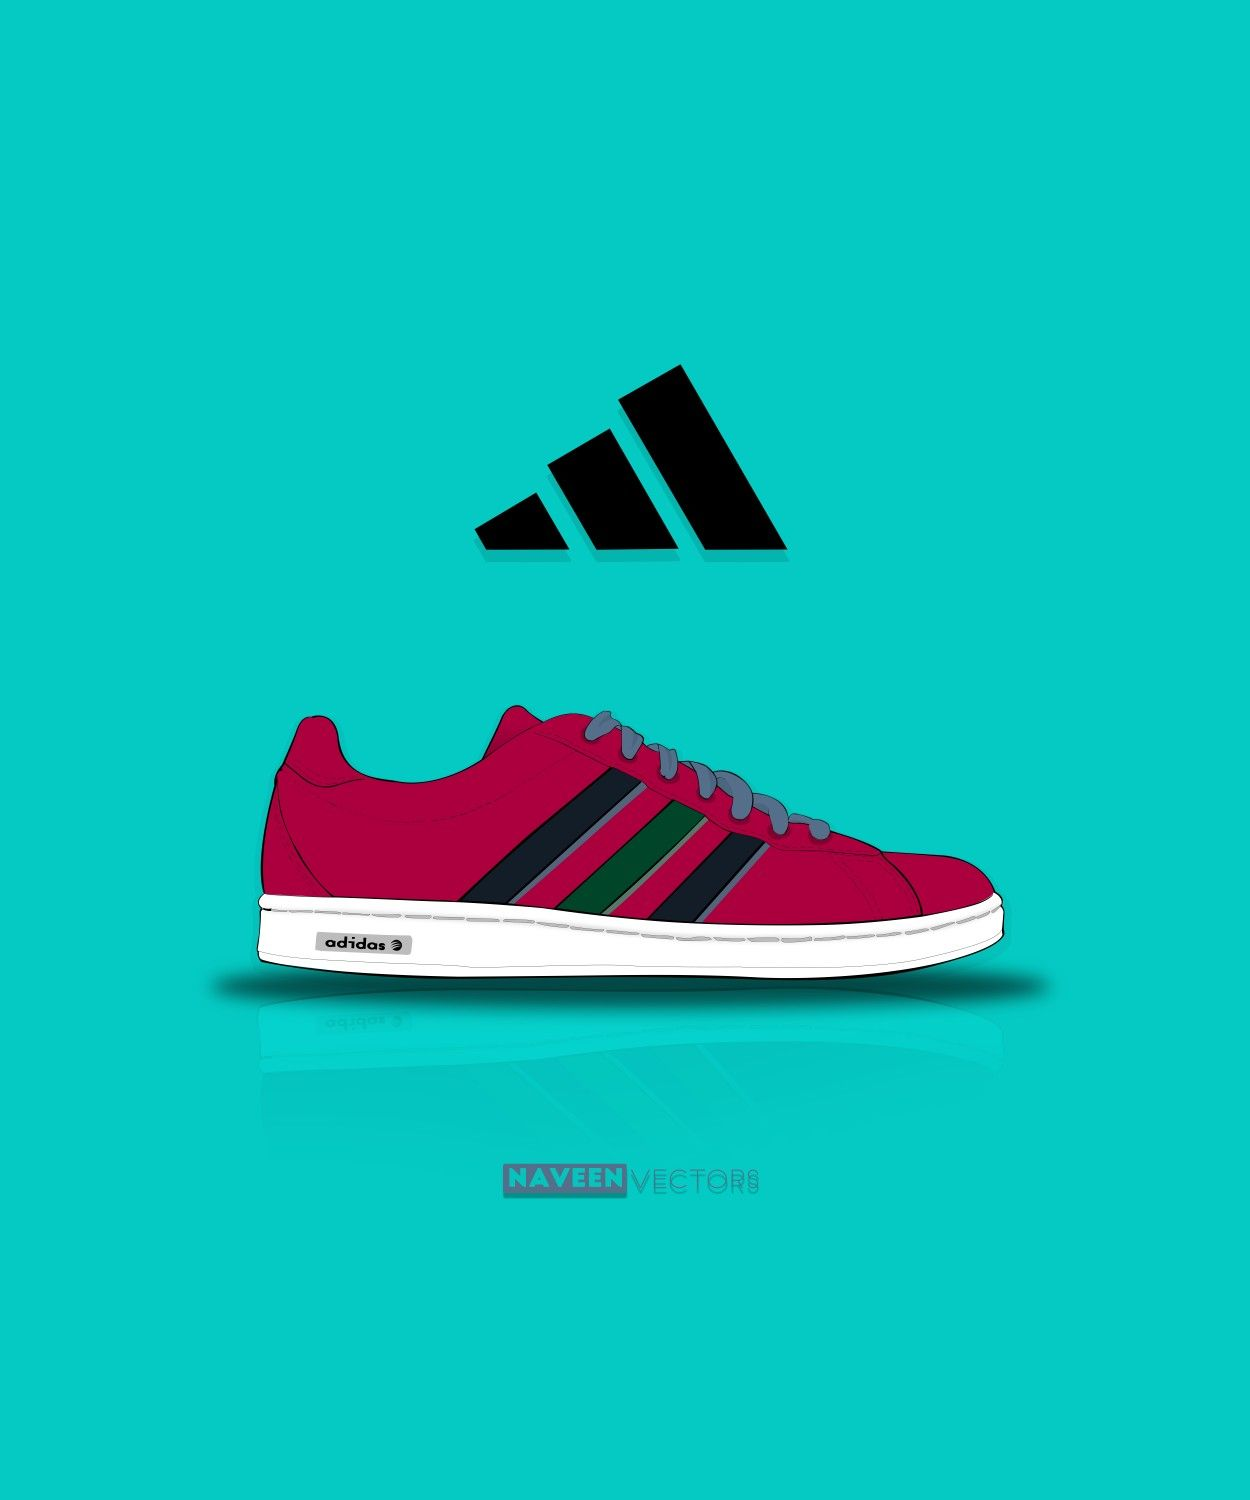 info for ec044 a7ad7 Adidas shoes Vector art Adobe illustrator Canvas Snickers Vectors Adobe  Photoshop Illustration Adidas s